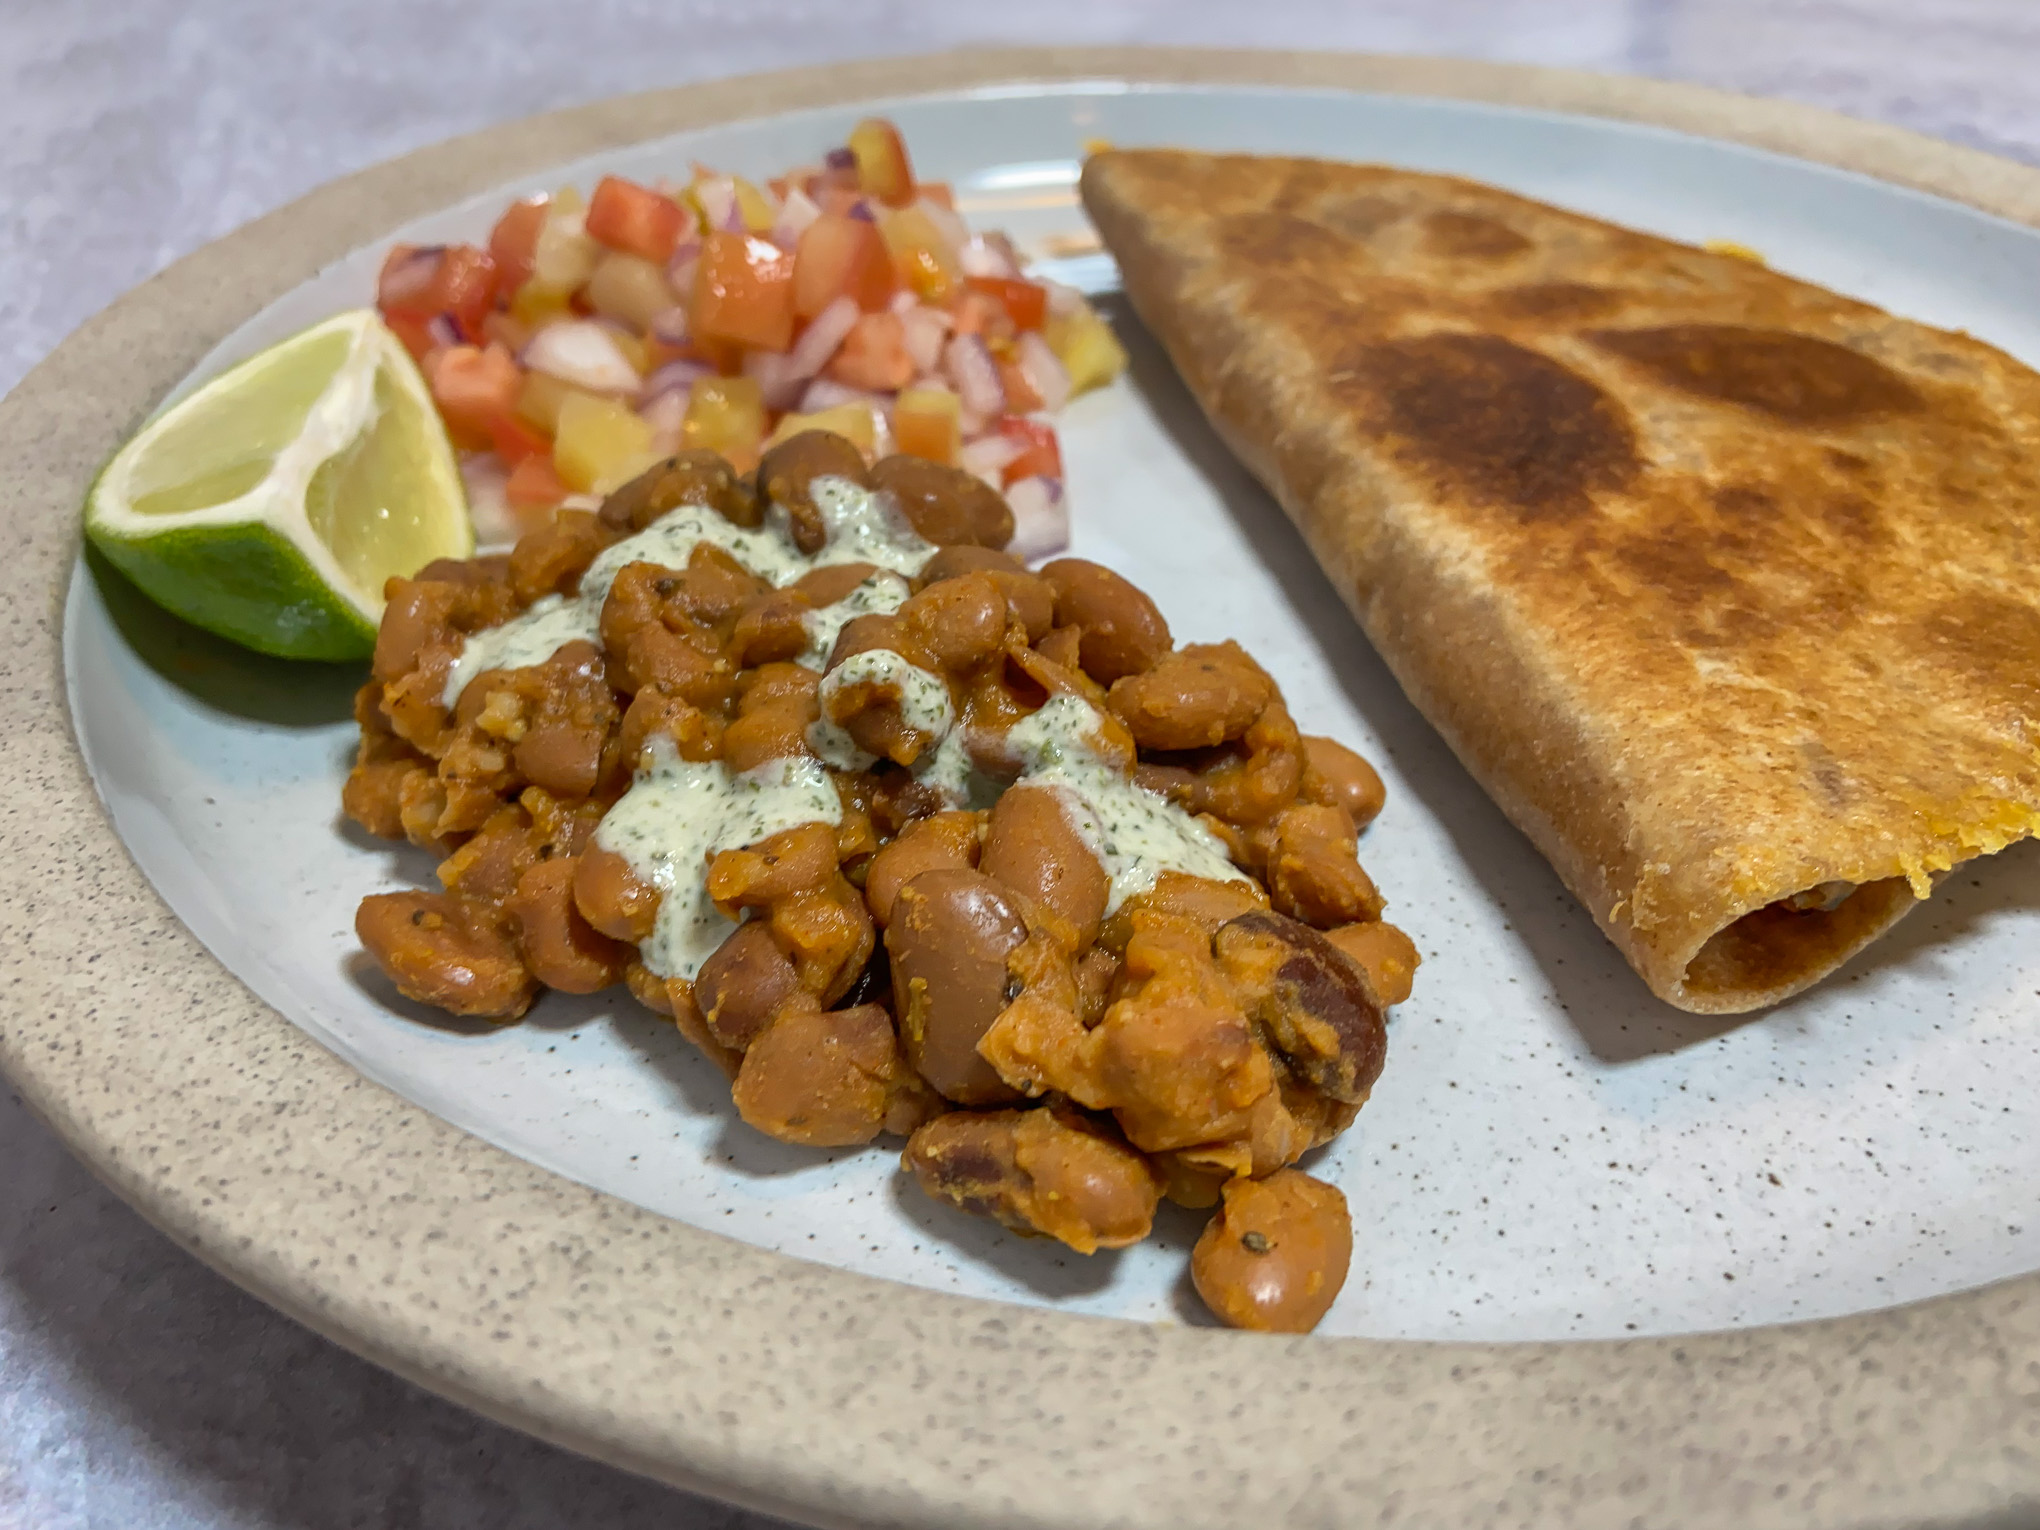 Plate with beans, salsa and quesadilla